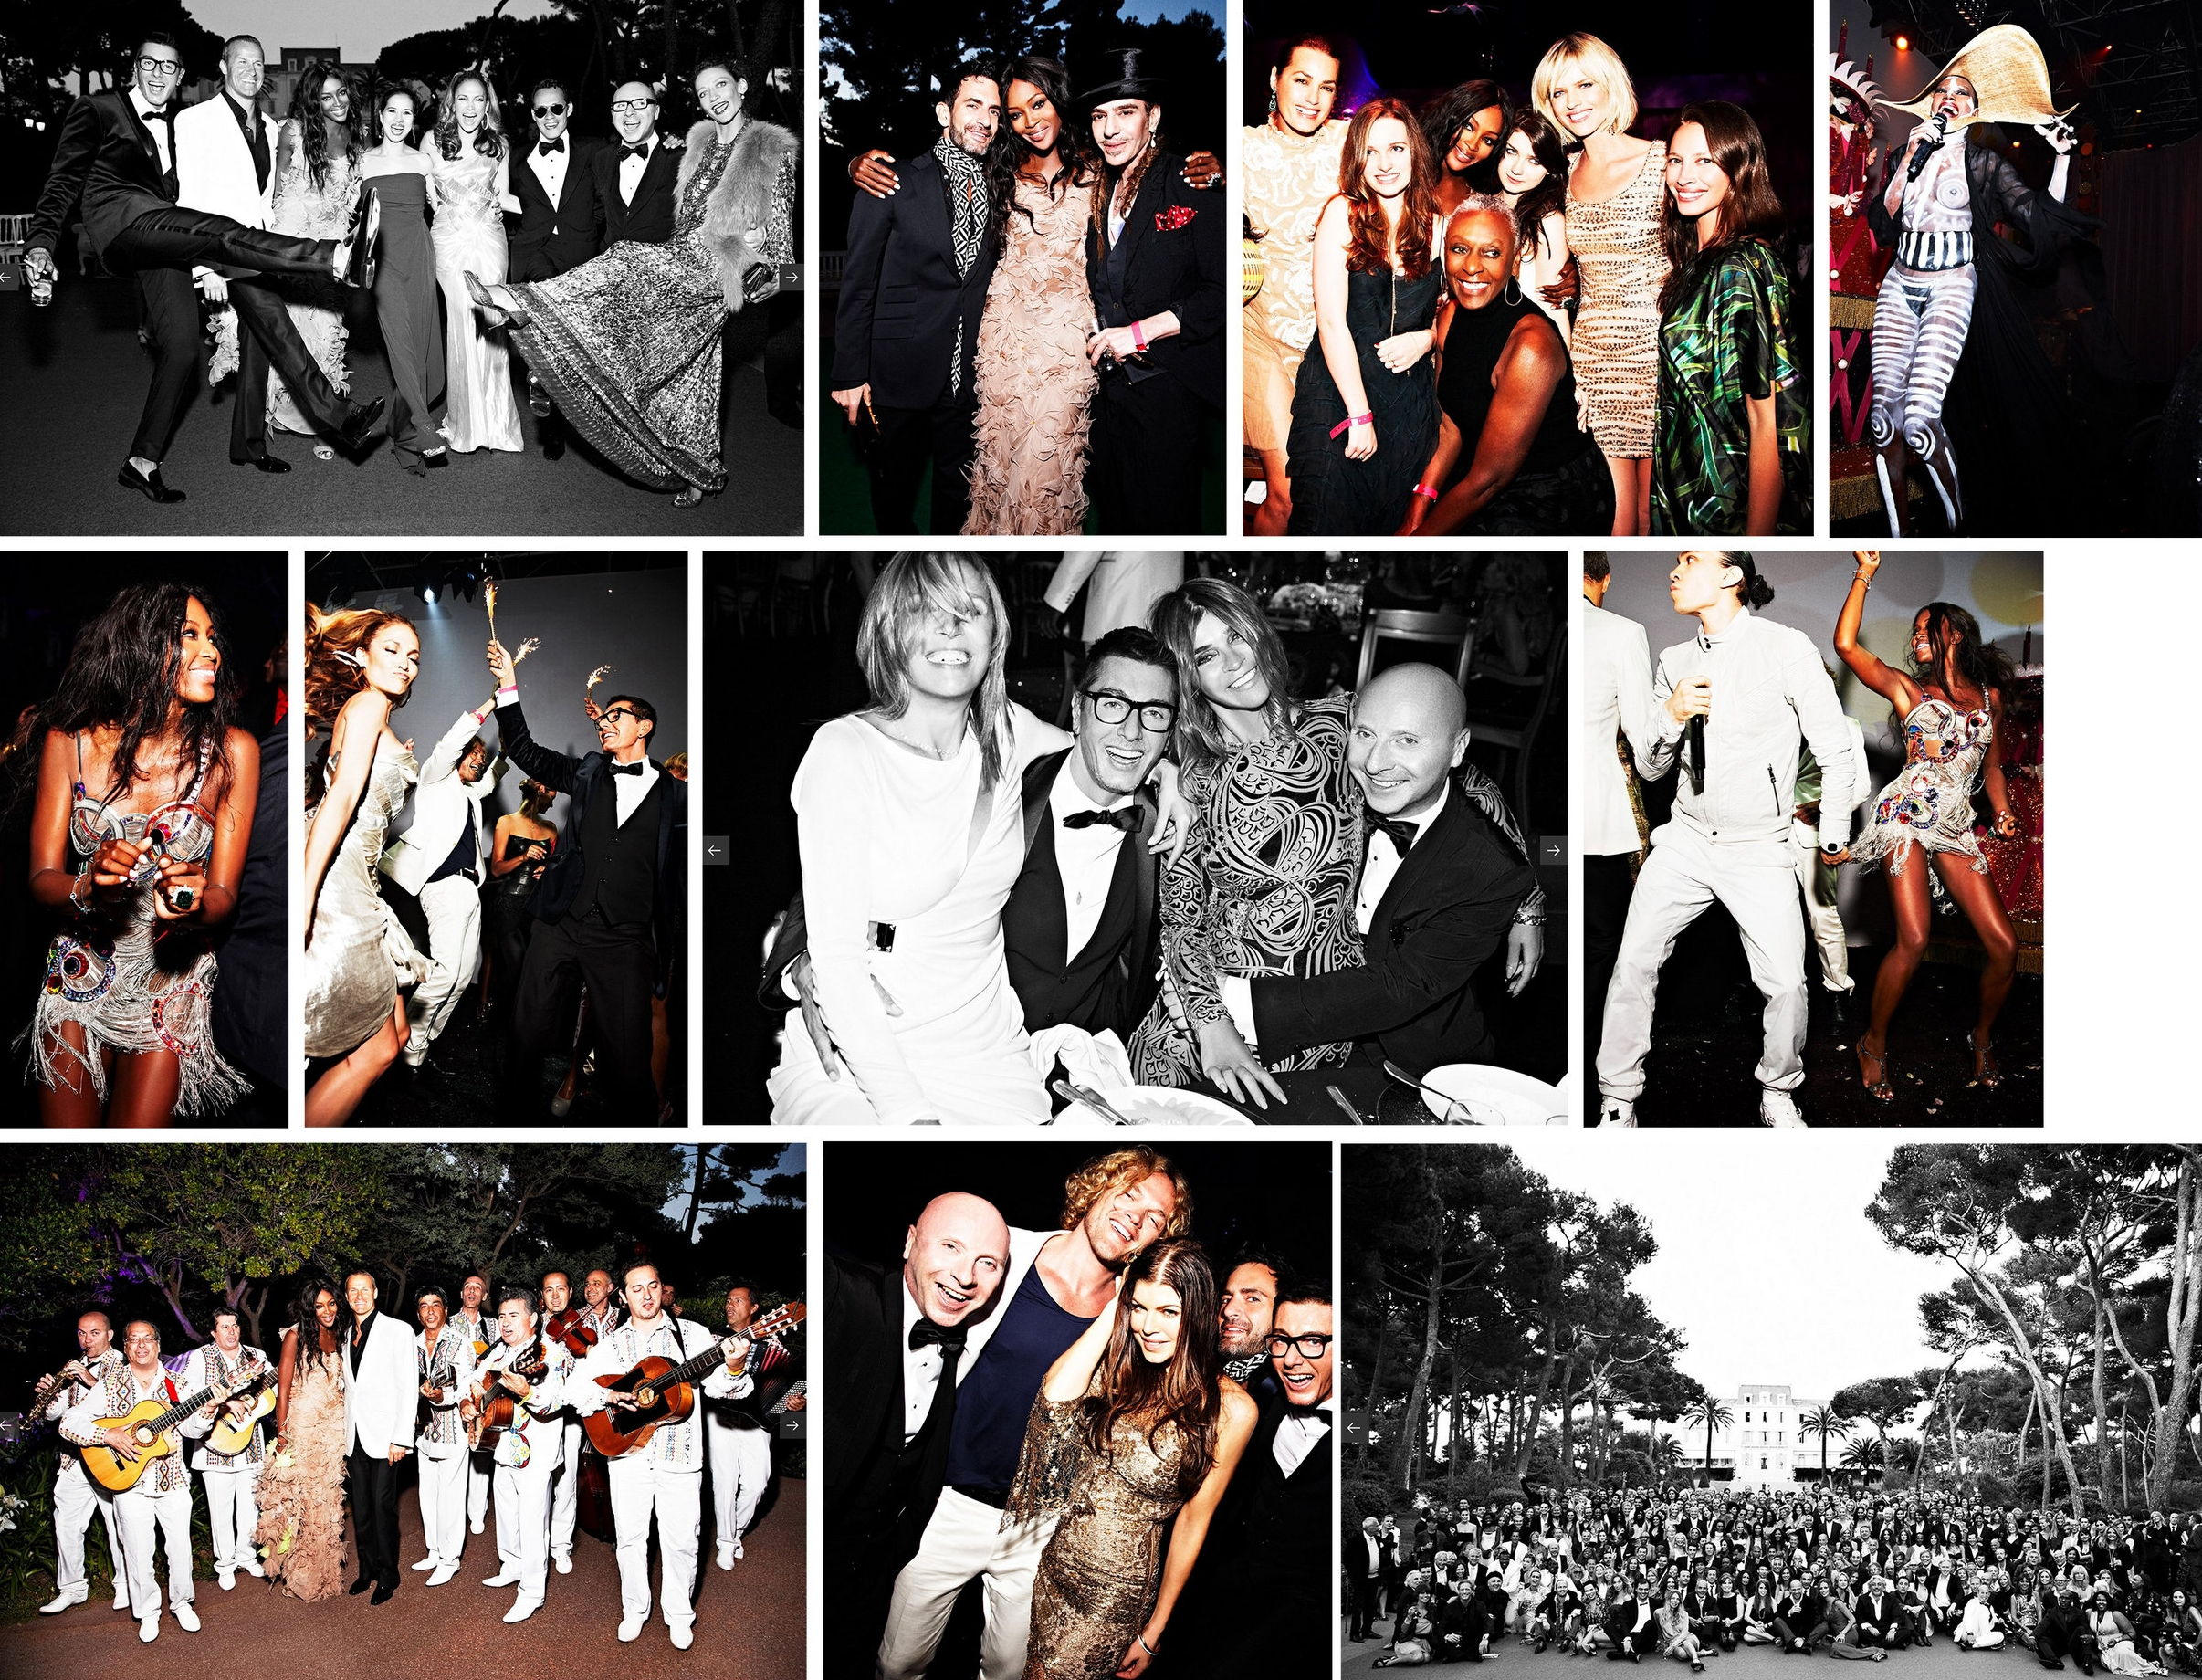 Client: Vogue Role: Producer, assigning photo editor Photographer: Ellen von Unwerth Naomi Campbell's 40th birthday party.